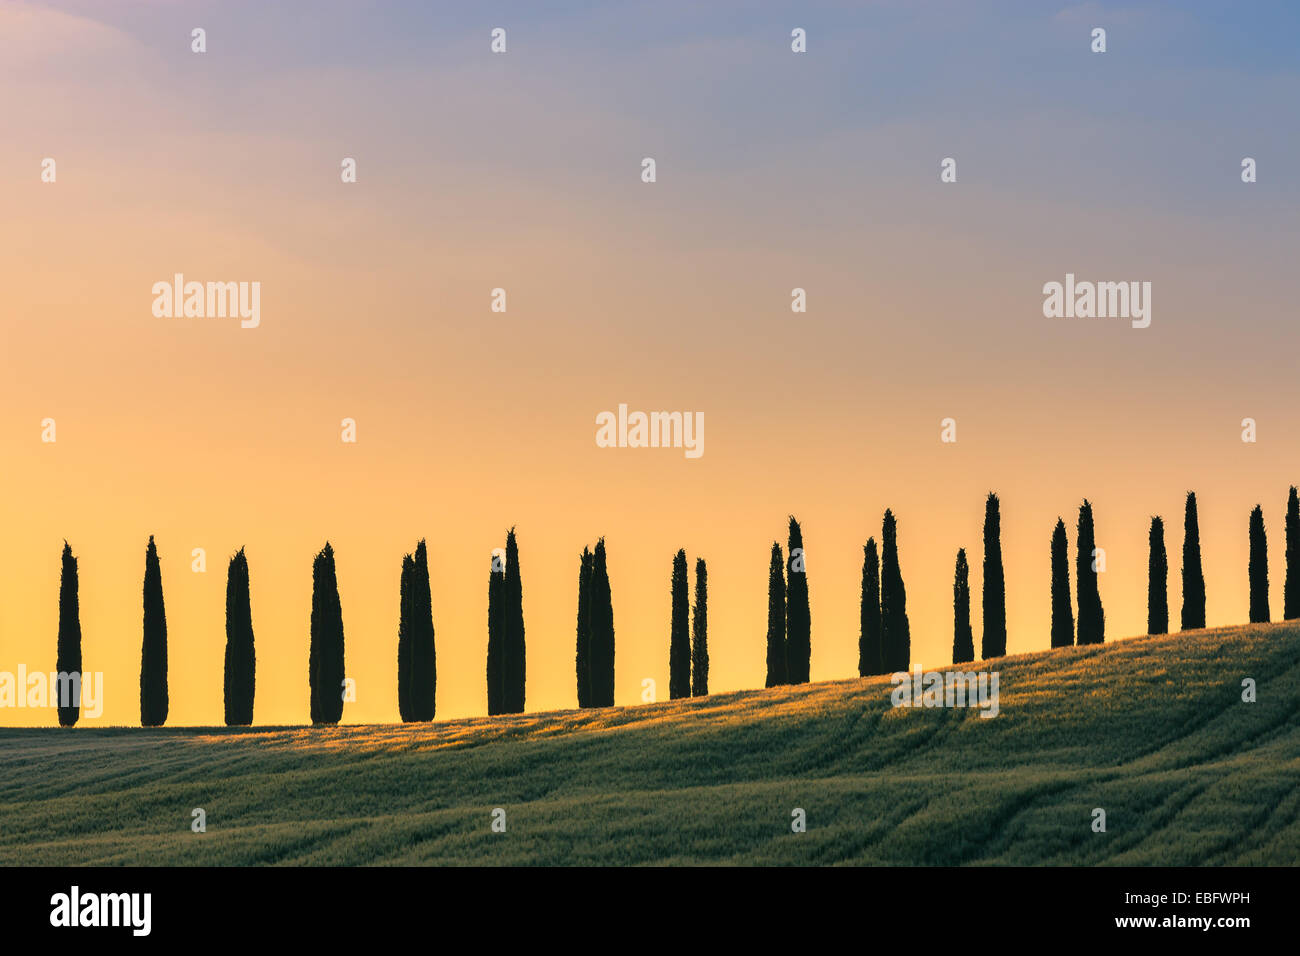 In the heart of Tuscany, some famous Cypress trees near Agriturismo Poggio Covili - Stock Image